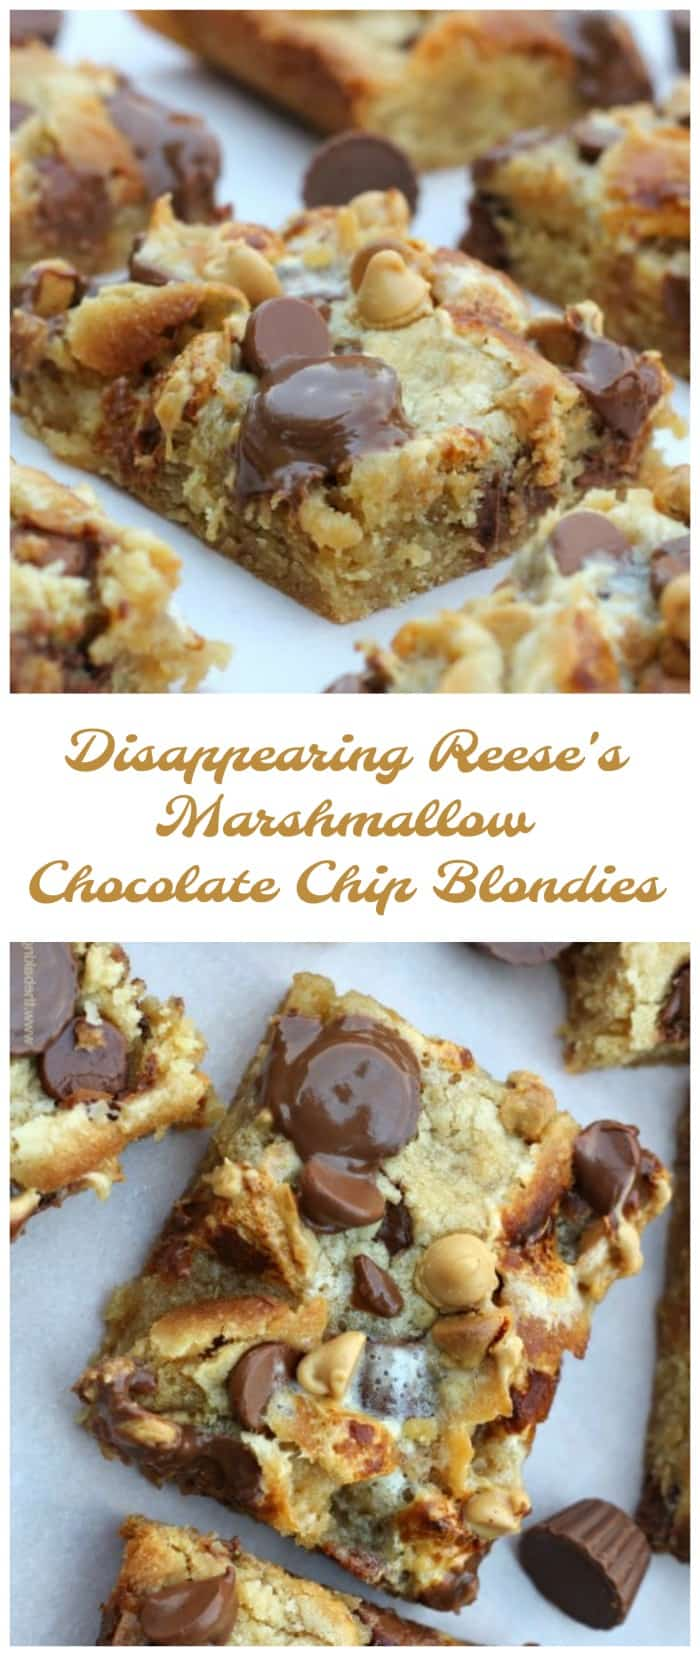 Super yummy blondie bars that are super addicting. They're perfect, thick and fudgy chocolate chip blondies baked with toasty marshmallow chunks and Reese's Peanut Butter Cups. Watch 'em disappear!